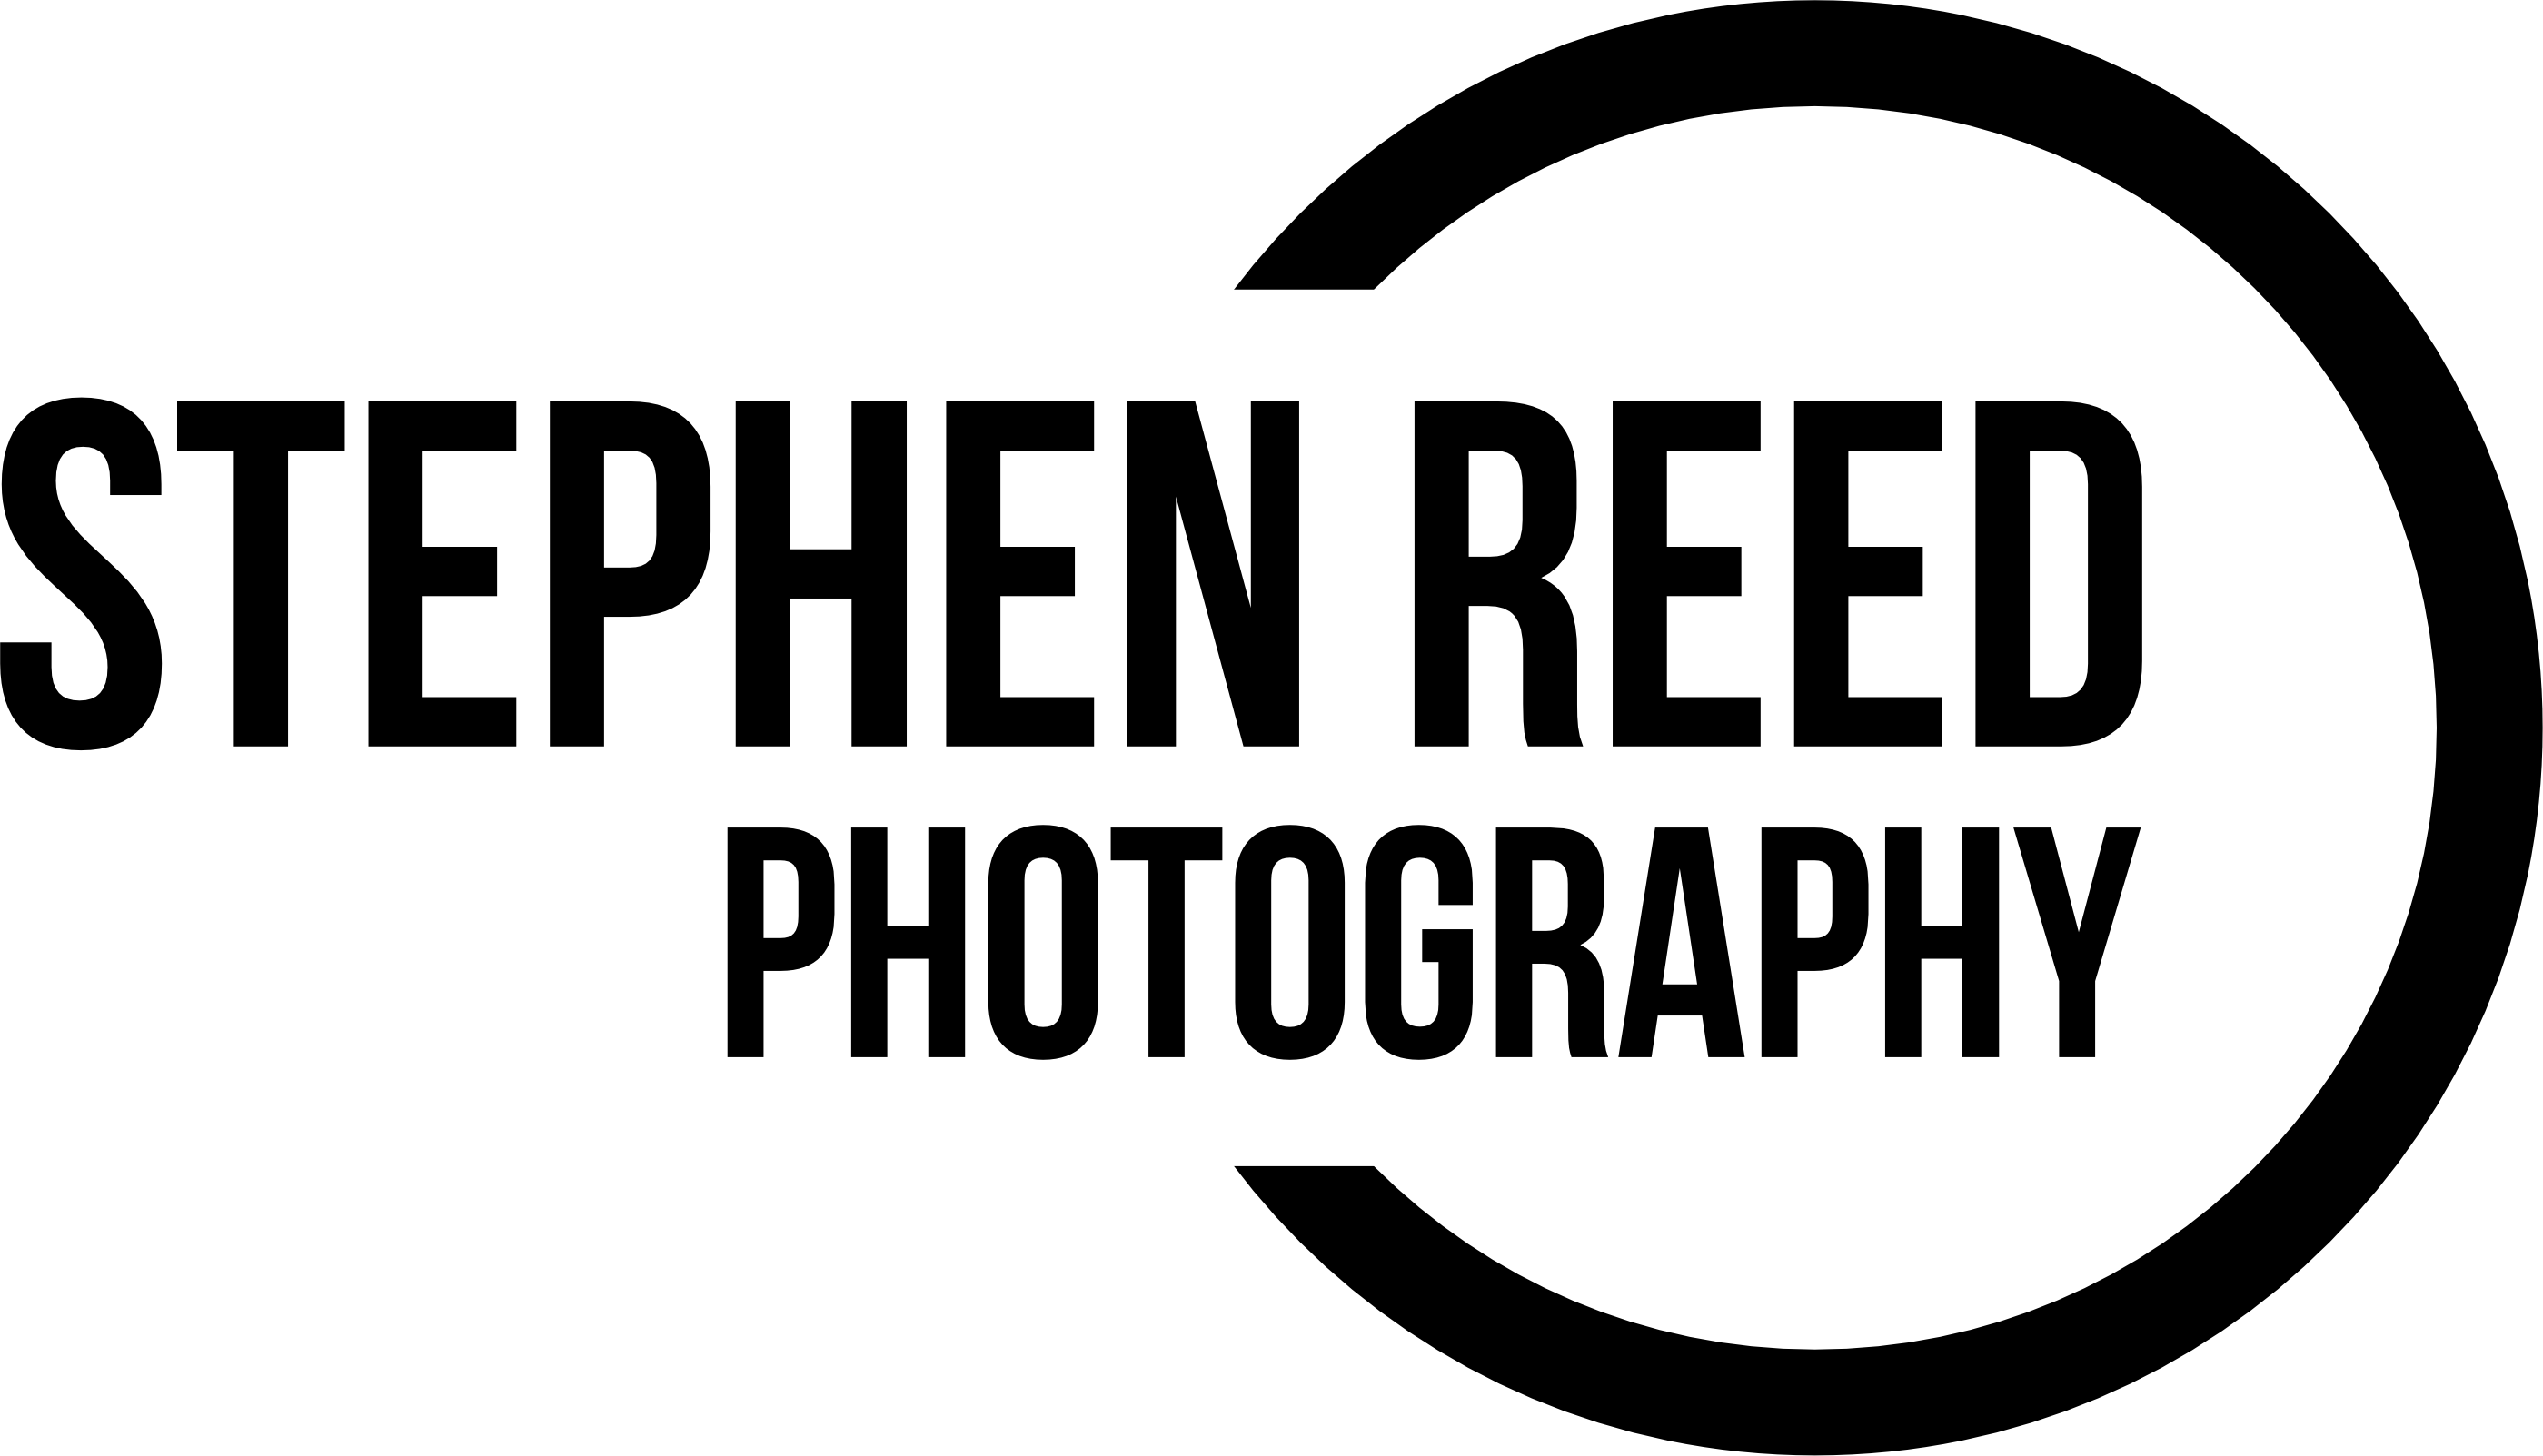 Stephen Reed Photography